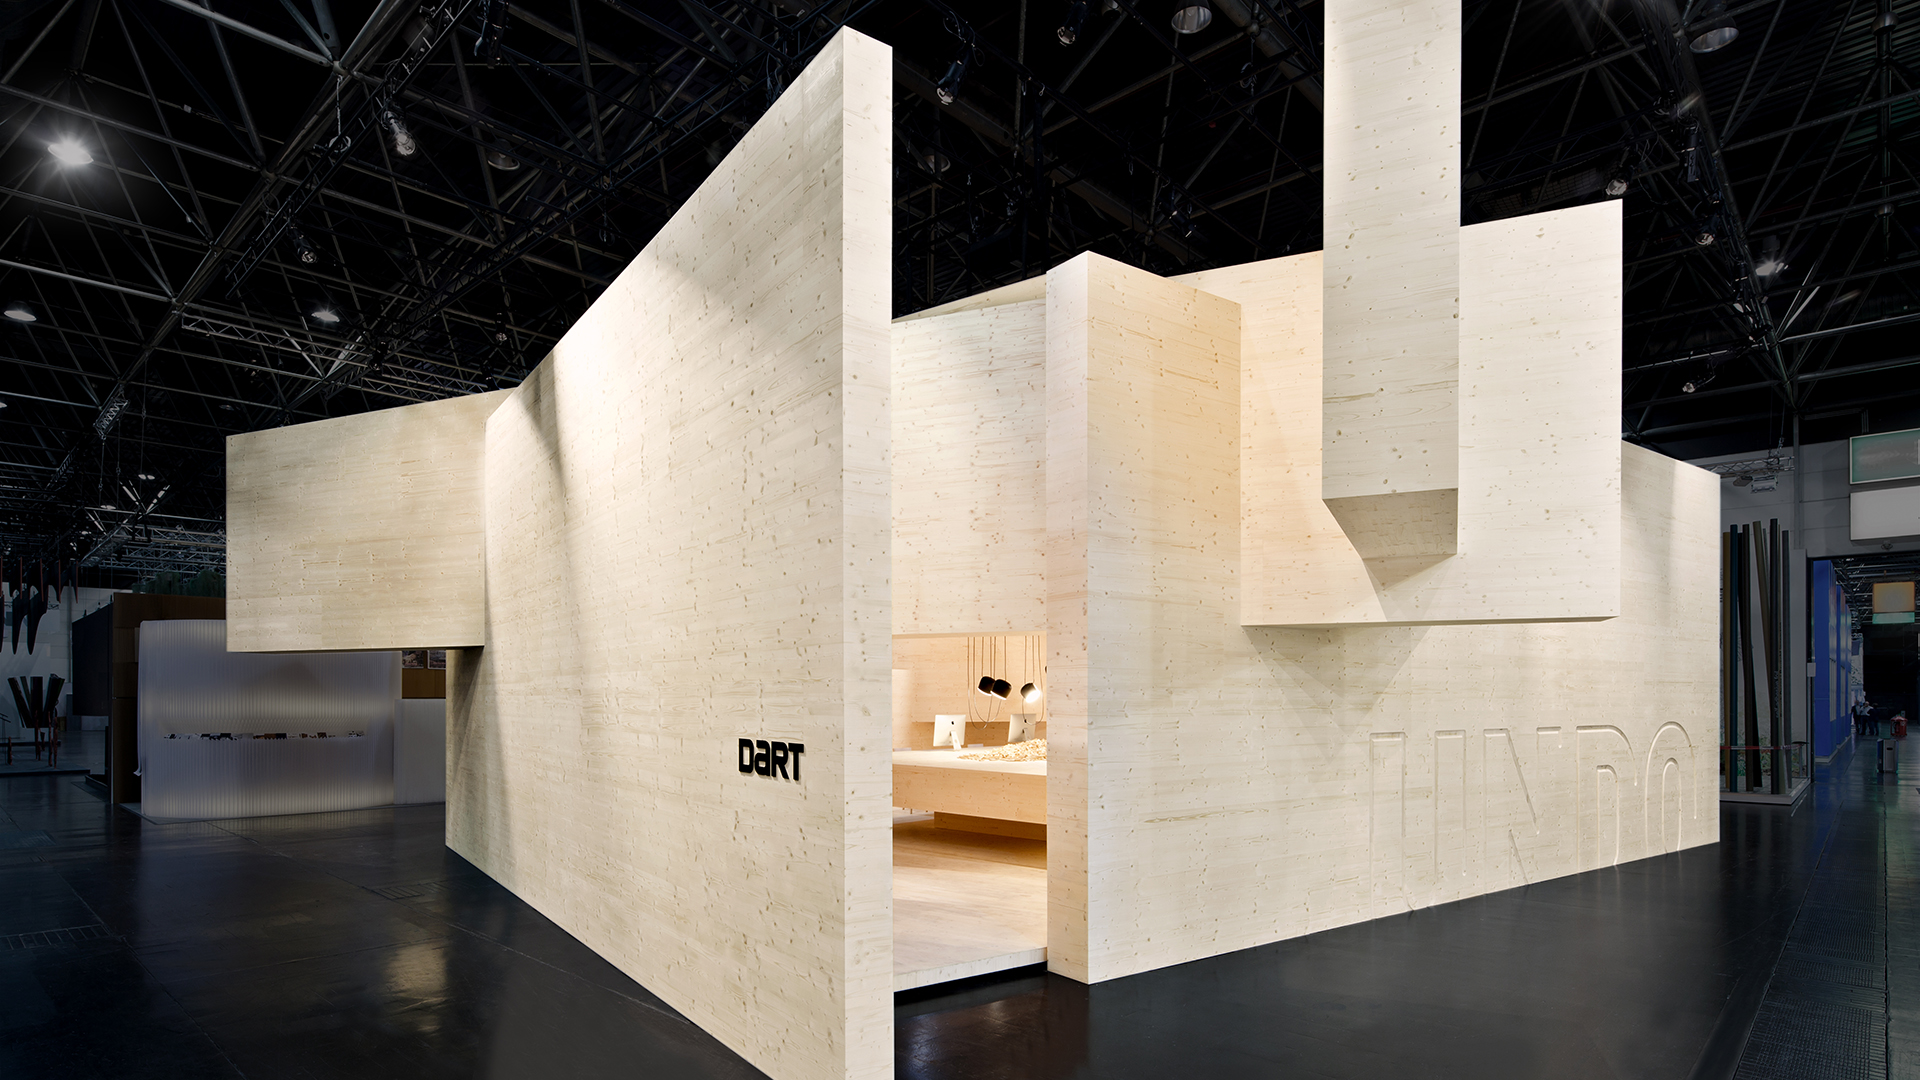 Dart stages the D'art Design Gruppe's own fair stand at the EuroShop 2014